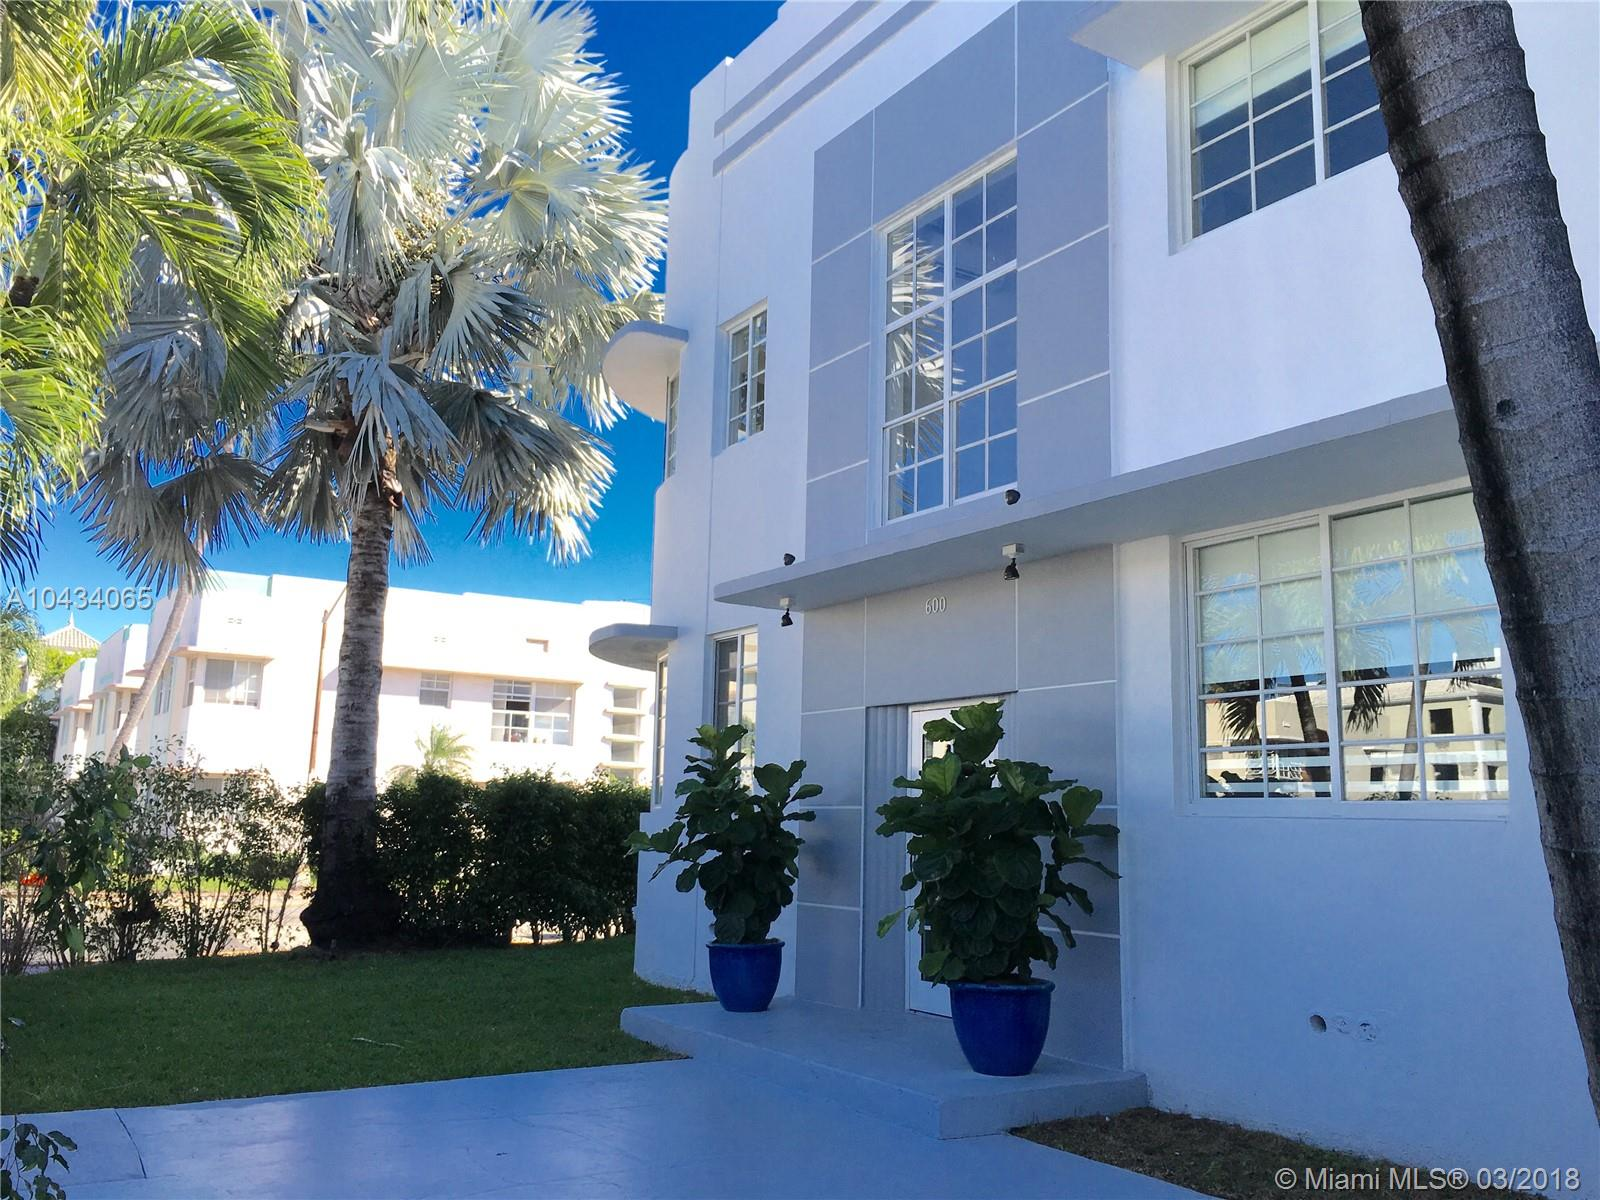 600  15th St #5 For Sale A10434065, FL